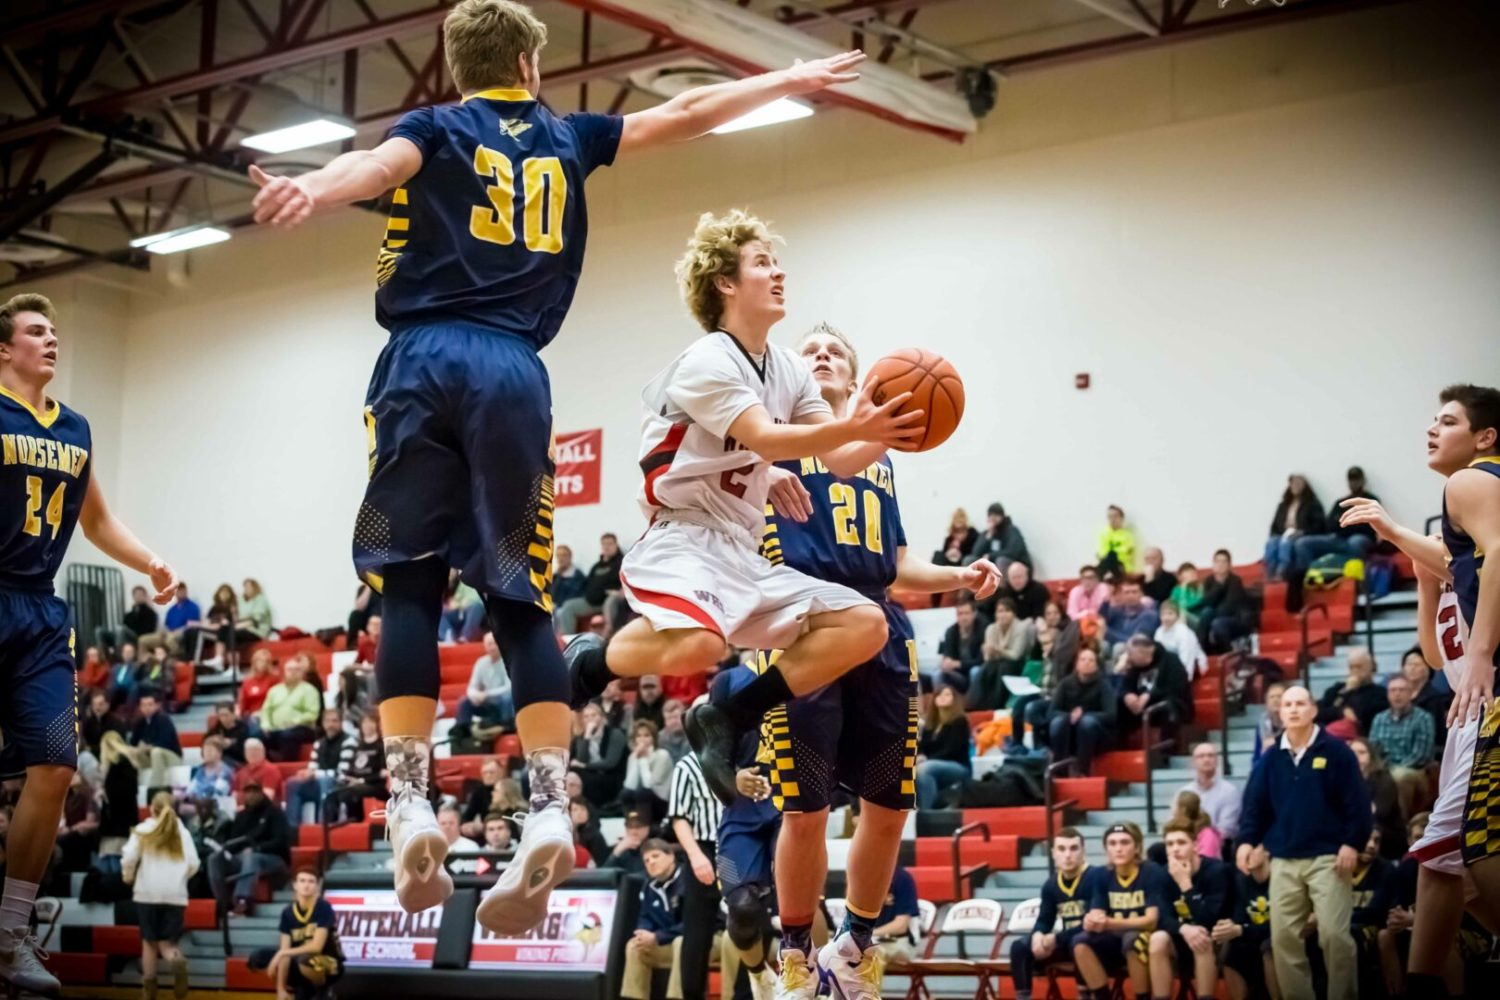 Whitehall boys overcome a big deficit and beat North Muskegon 73-71 in overtime